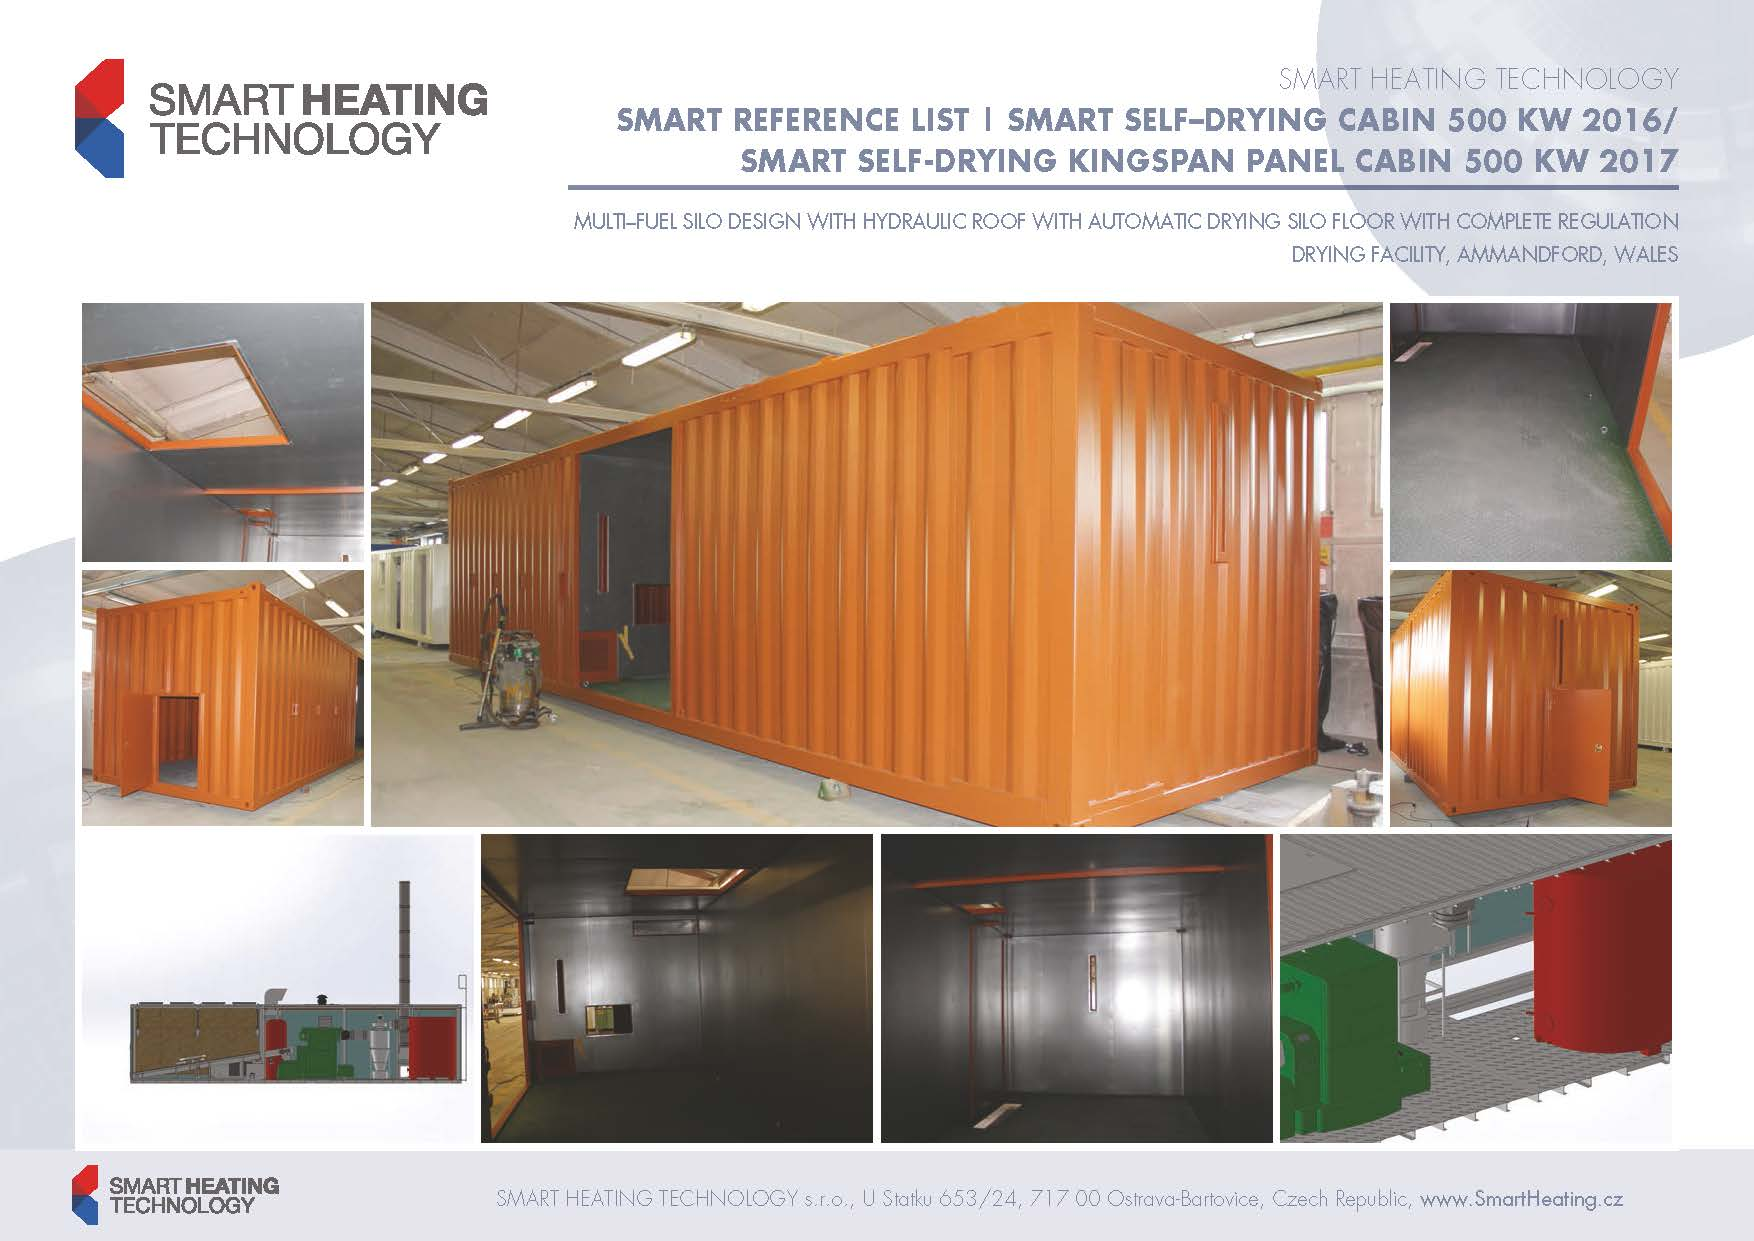 smart_self-drying_cabin_500-kw_ammandford_wales_nahled_stranka_1